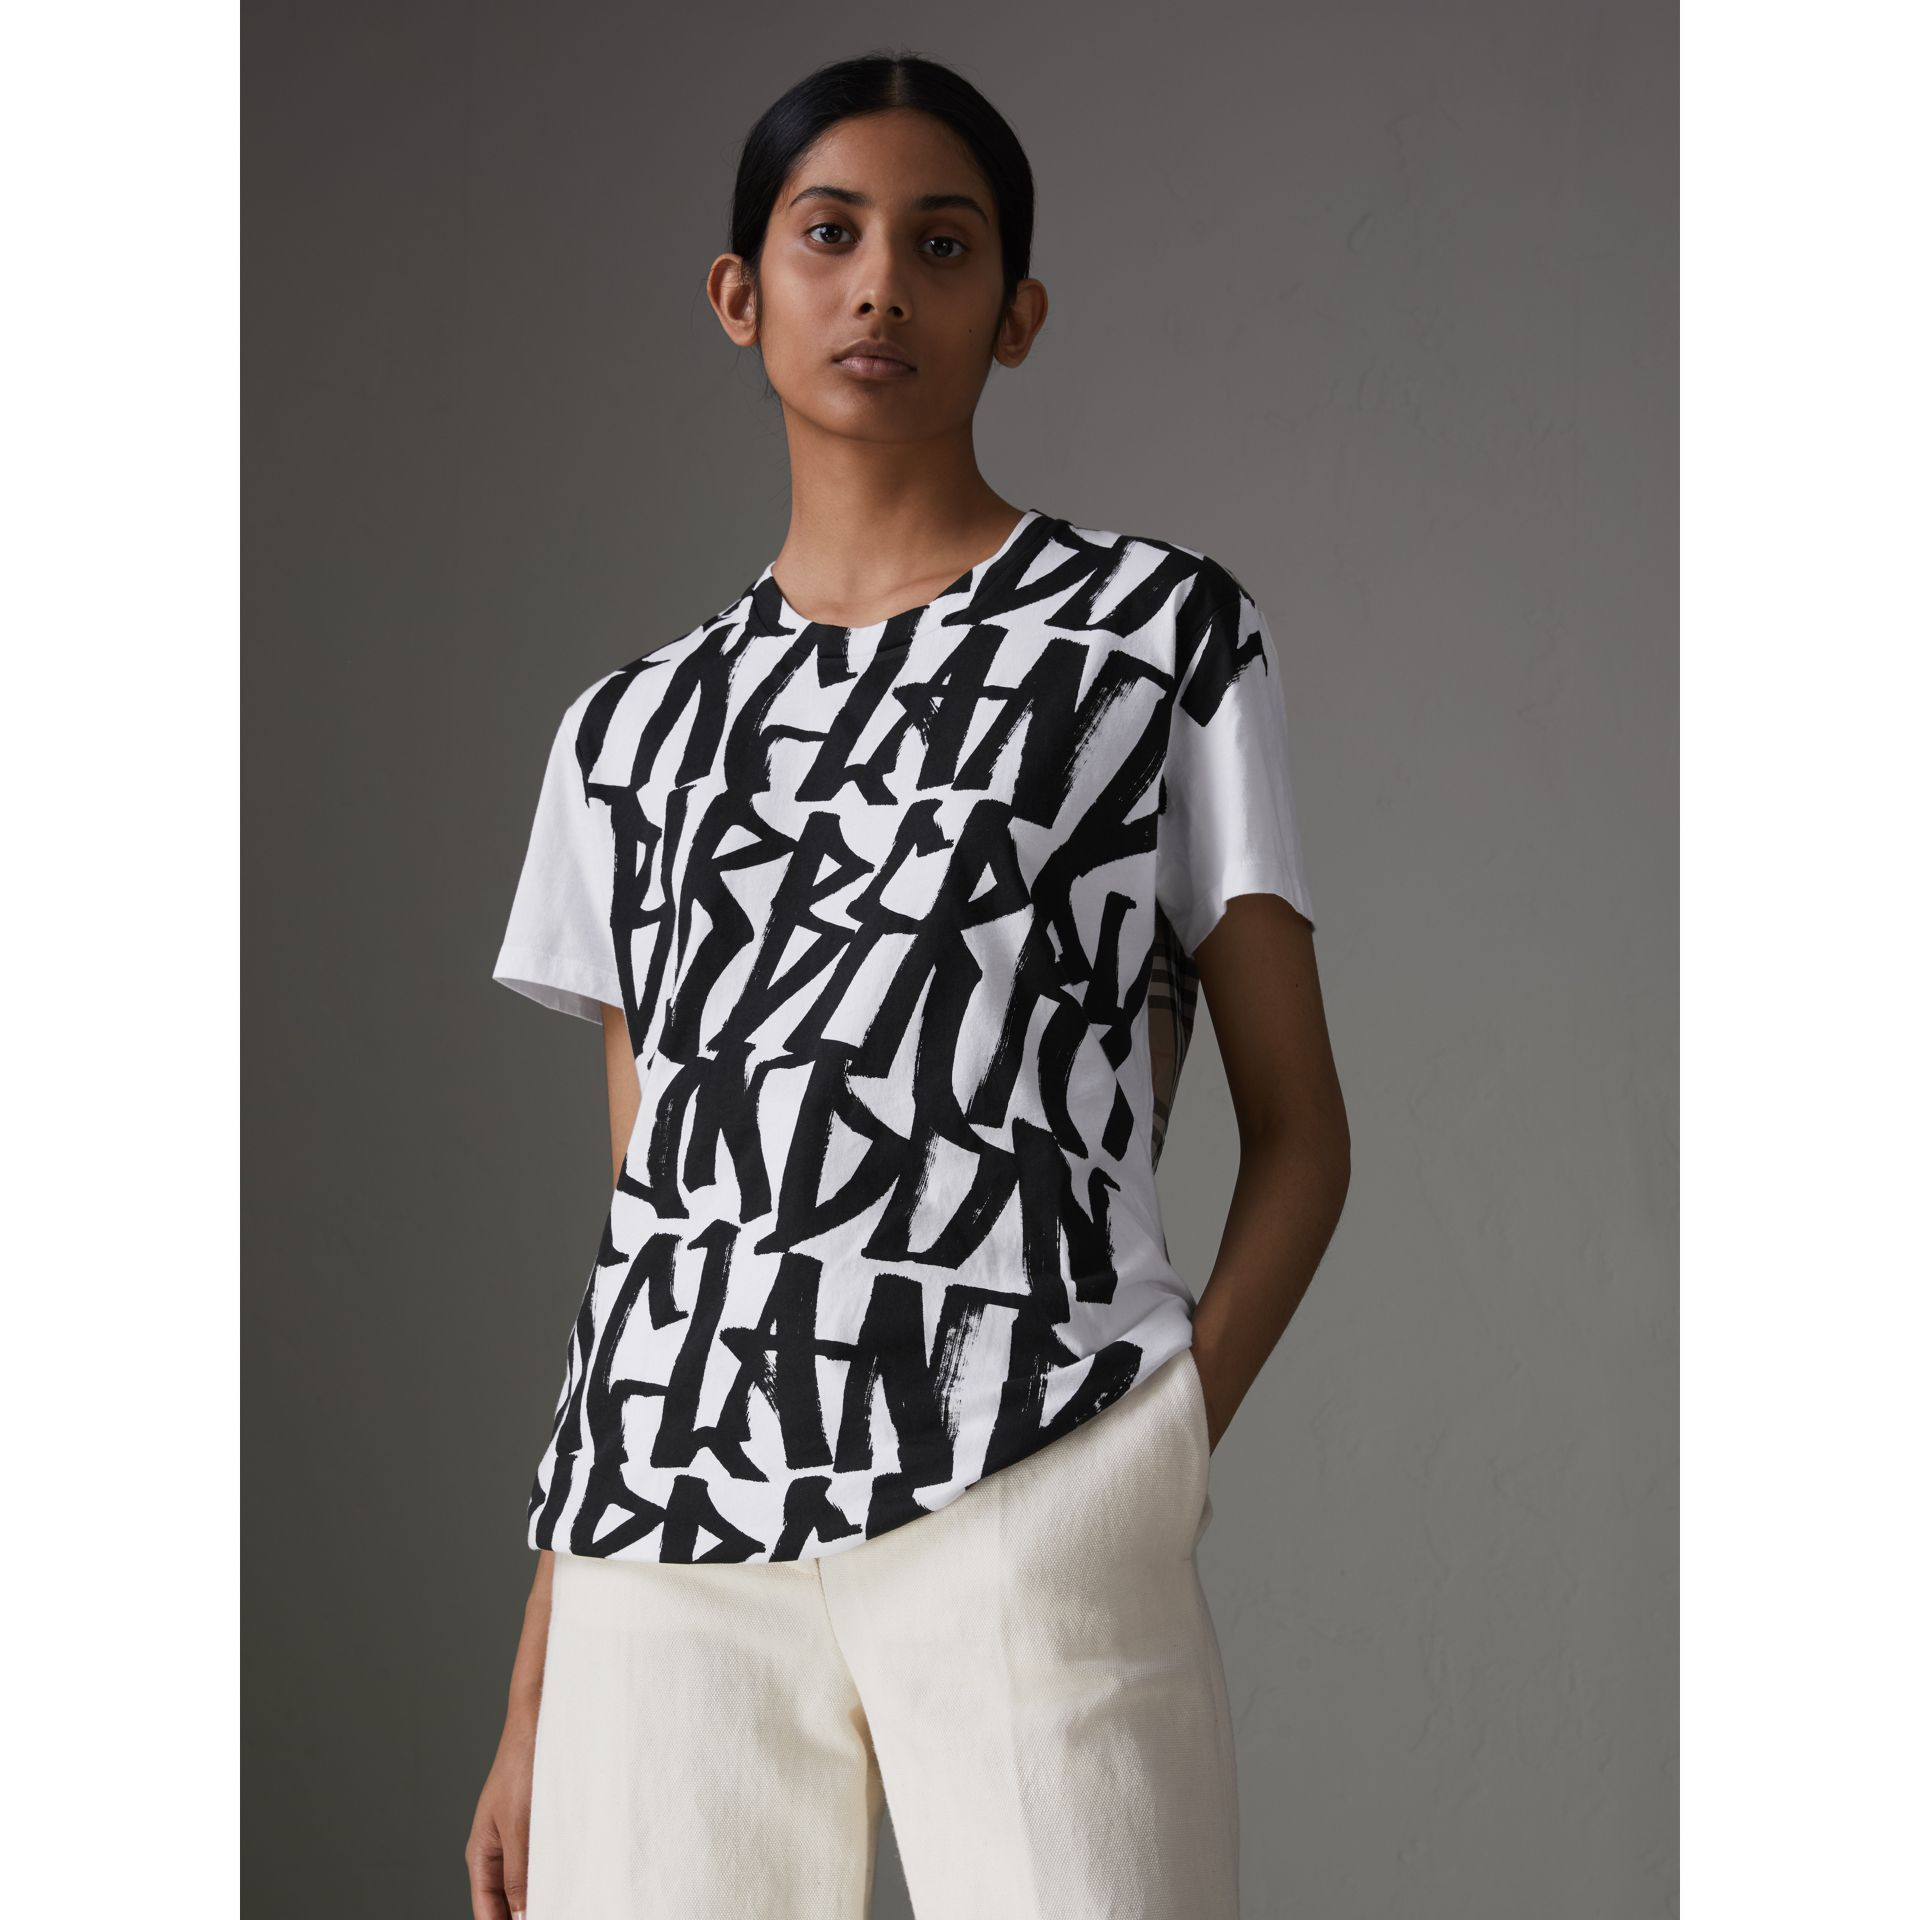 Graffiti Print and Vintage Check T-shirt in White - Women | Burberry - gallery image 4